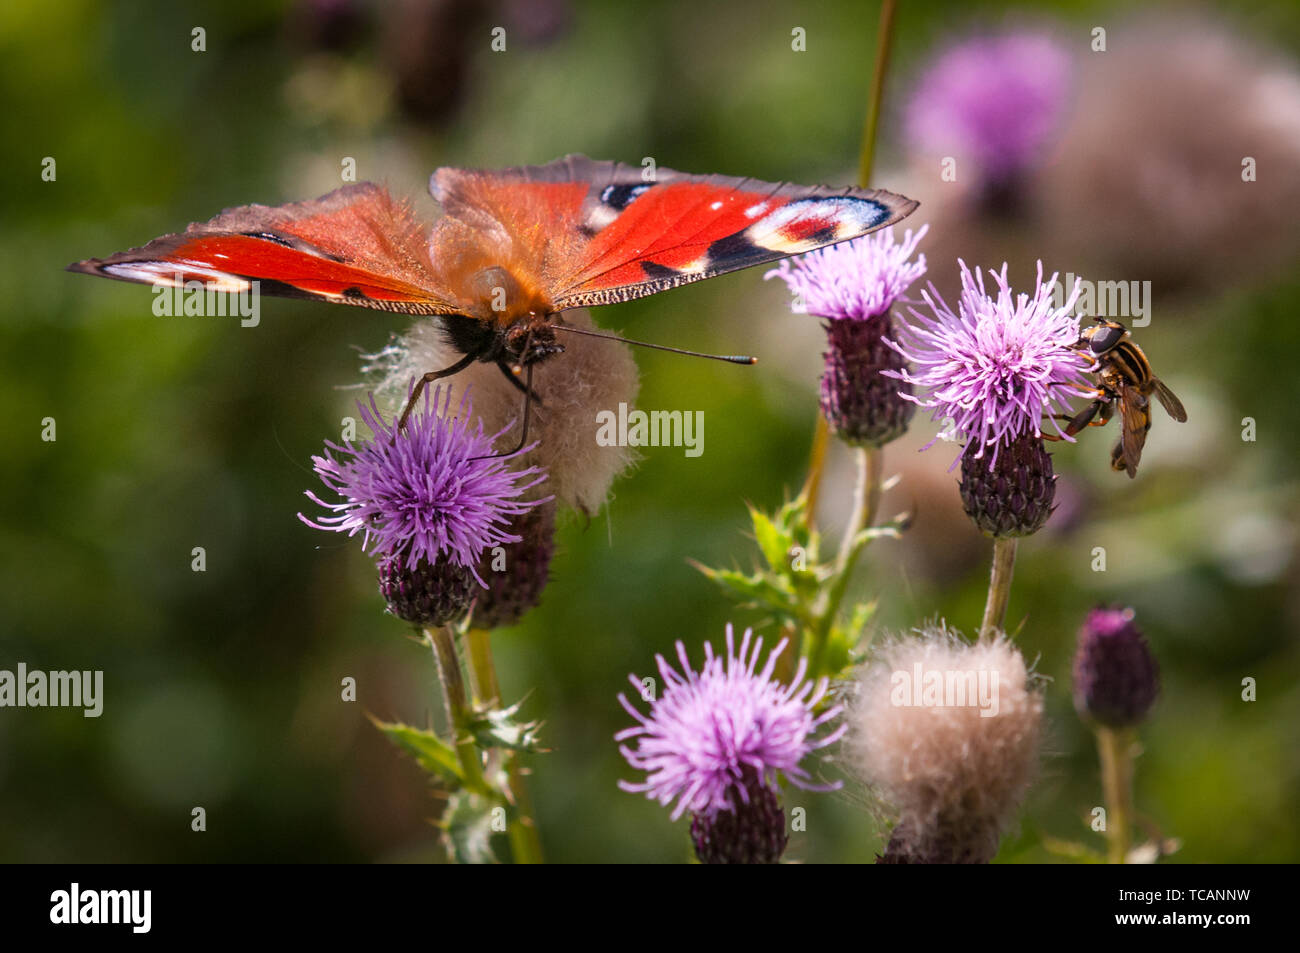 The European Peacock Butterfly (Inachis io  Subfamily:  Apaturinae) often commonly known as the Peacock butterfly, on a patch of thistles which have started to seed in late summer Stock Photo